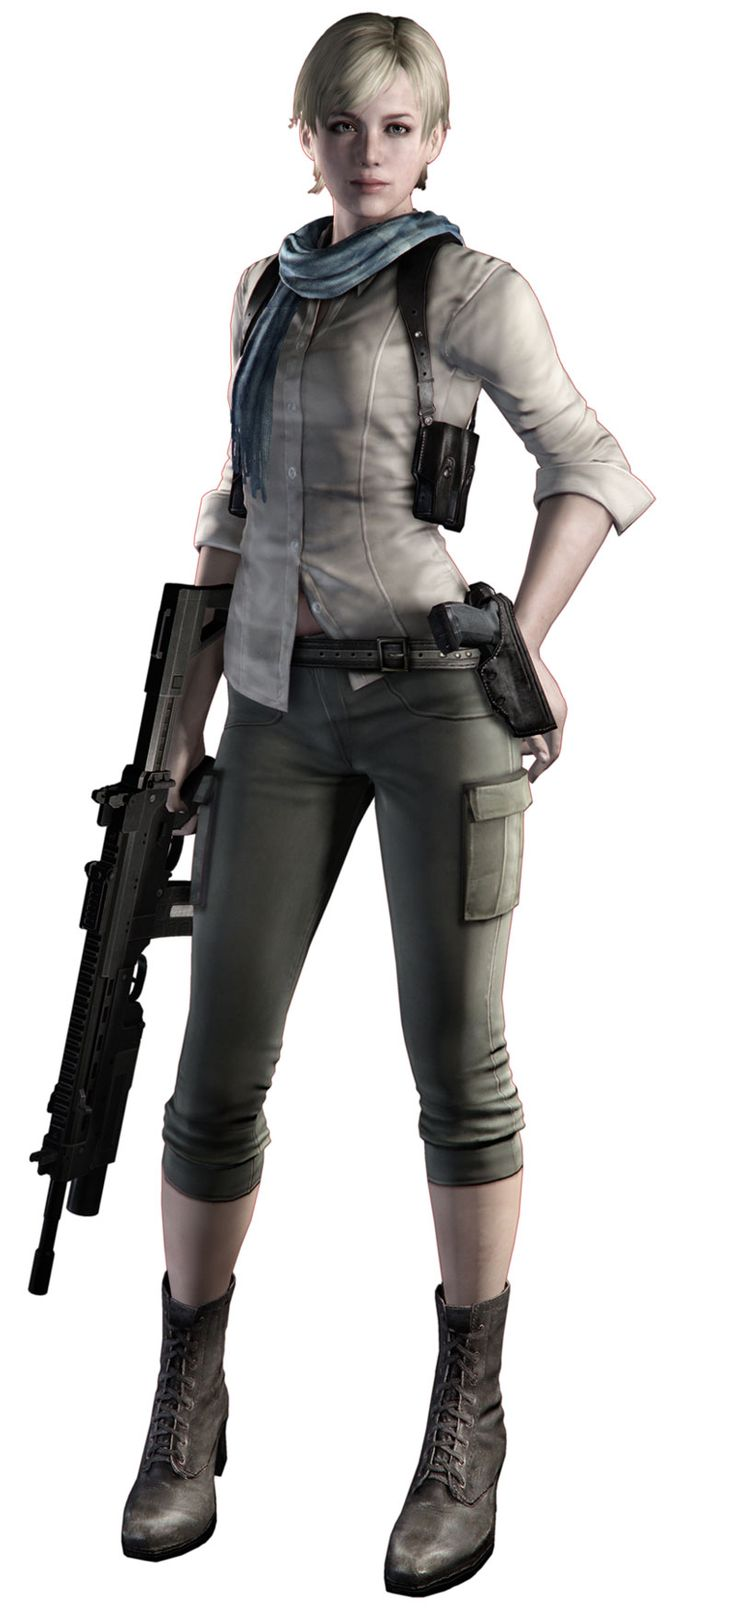 Sherry Birkin - Resident Evil 6. Her and Jakes campaign was my favourite section of the game!